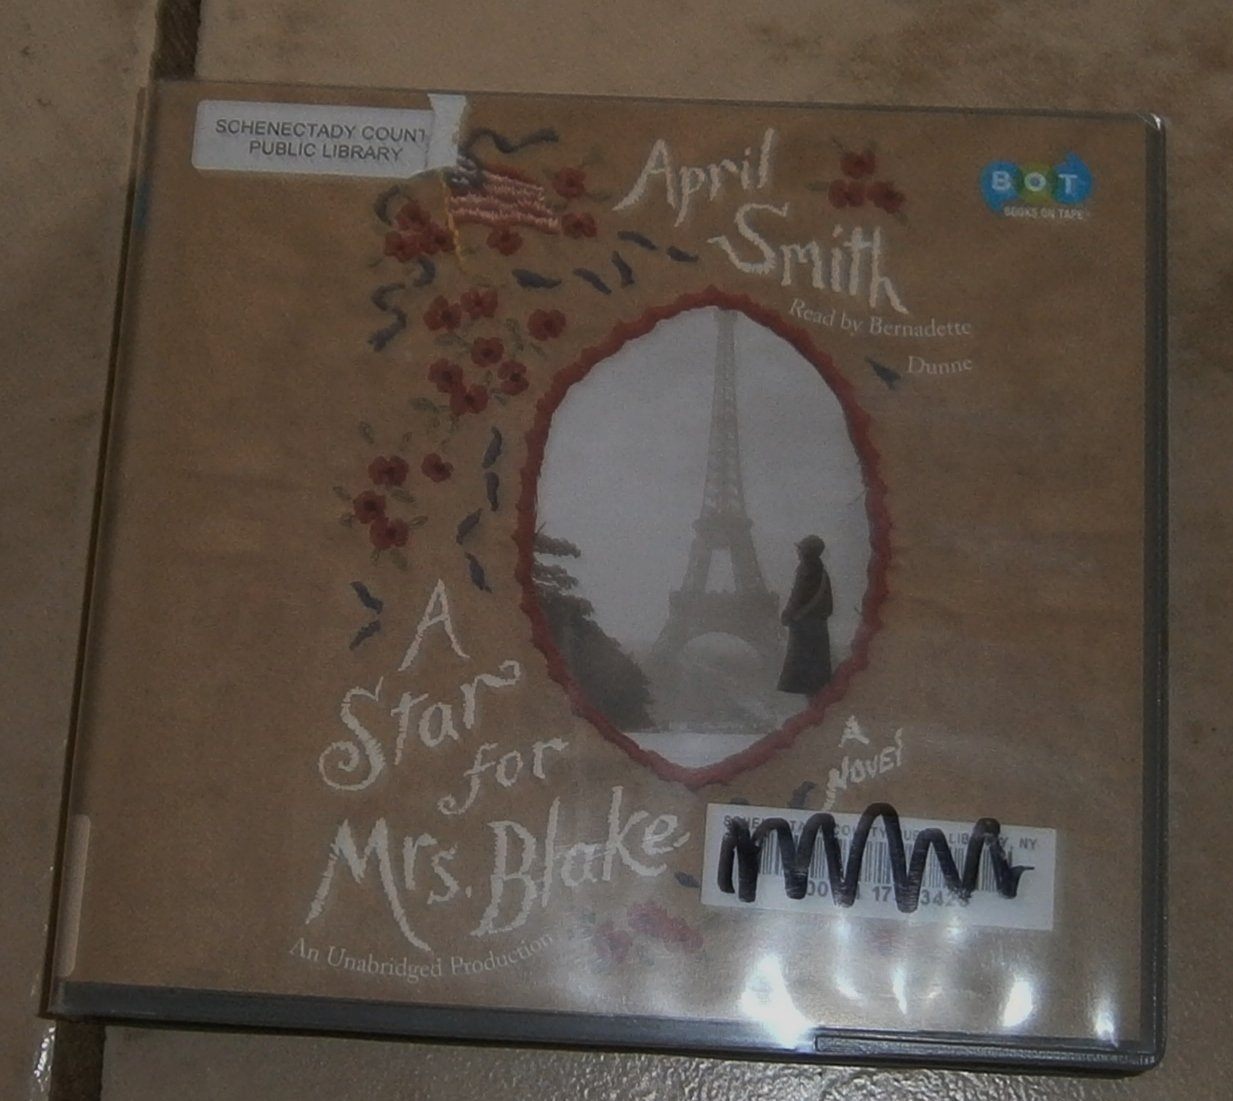 A Star for Mrs. Blake April Smith audio book cds